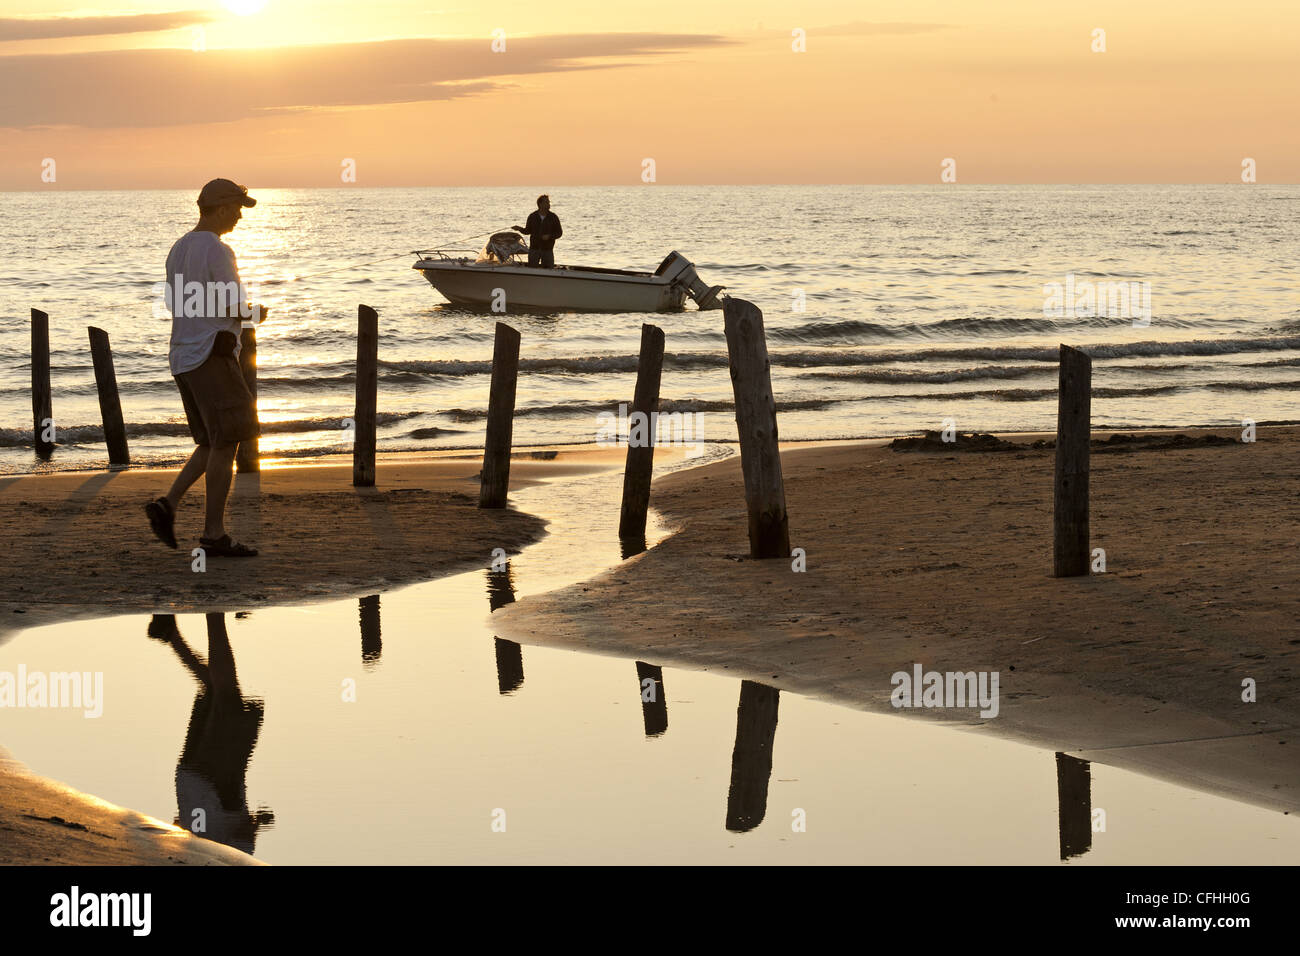 Walking on a beach at sunset, Lake Huron, Sauble Beach, ON, Canada - Stock Image